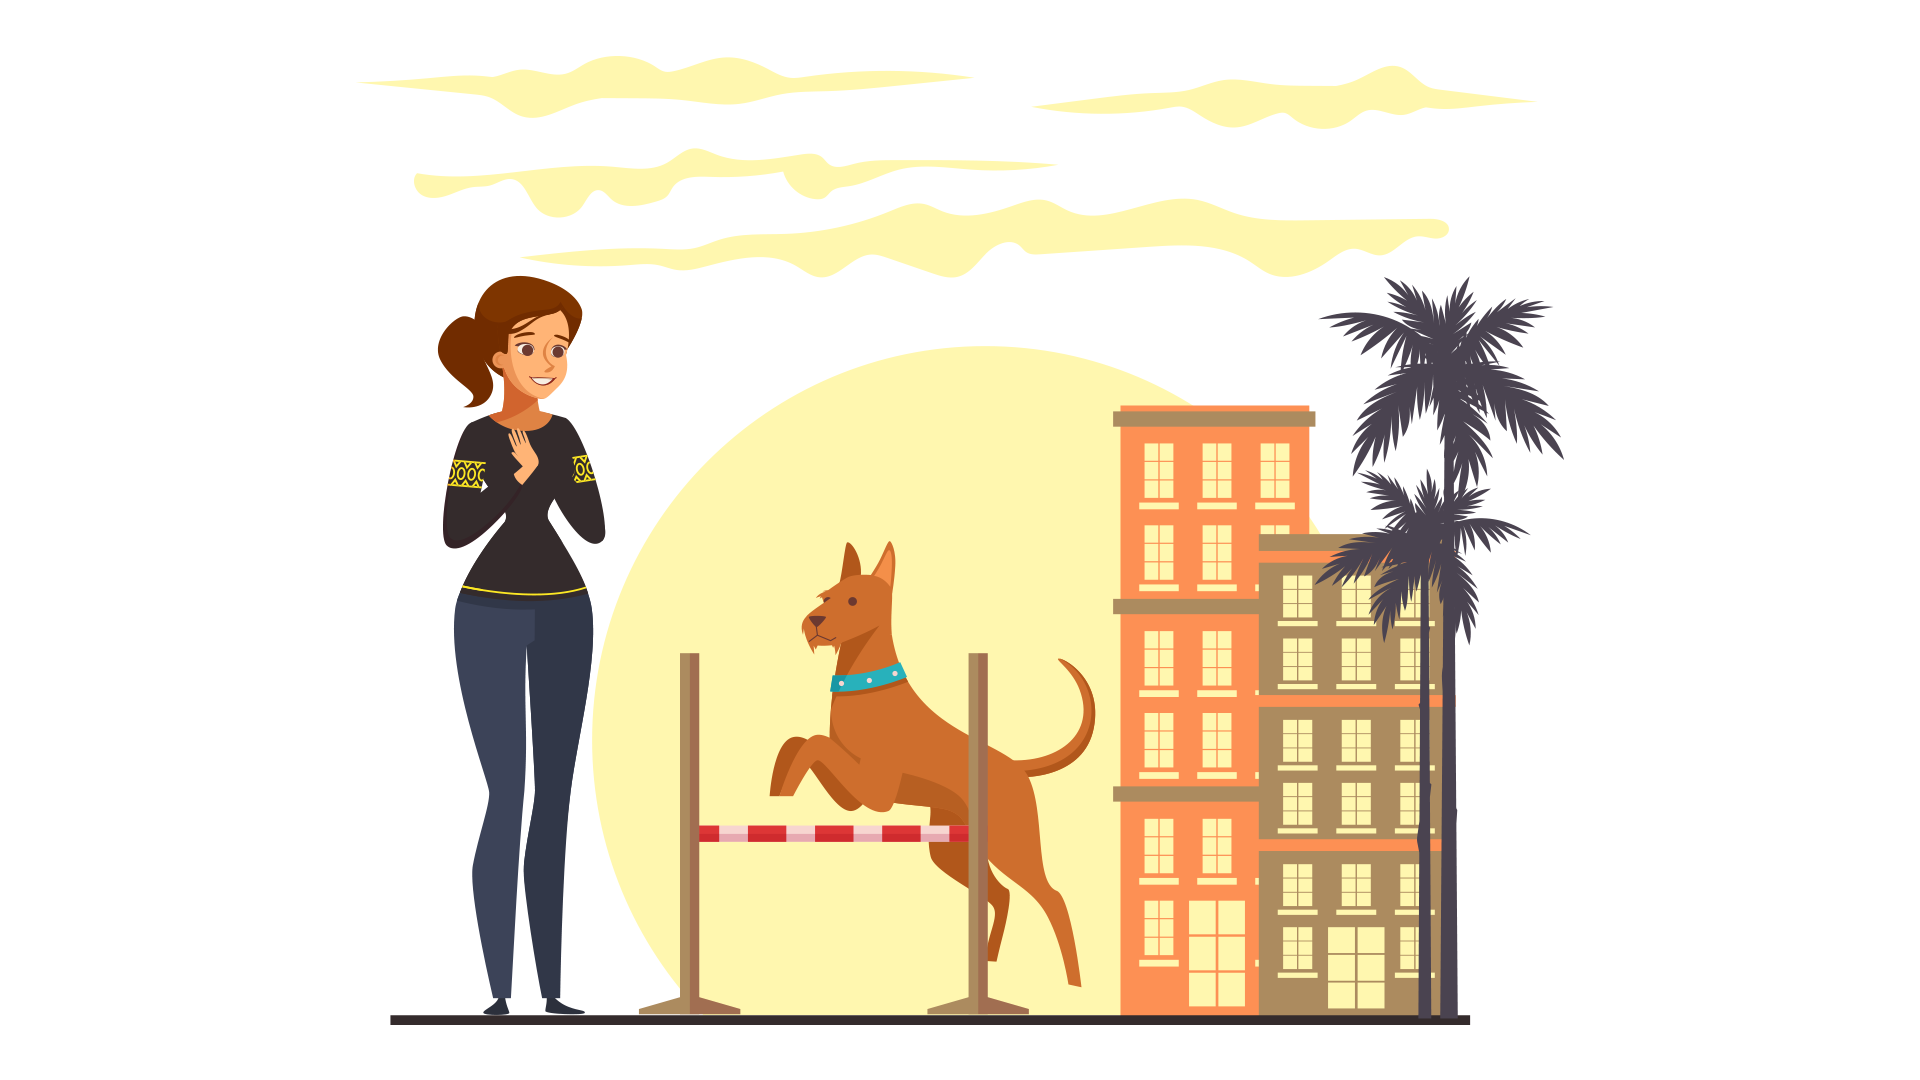 Core niche KPIs to consider before creating a dog walking business app.